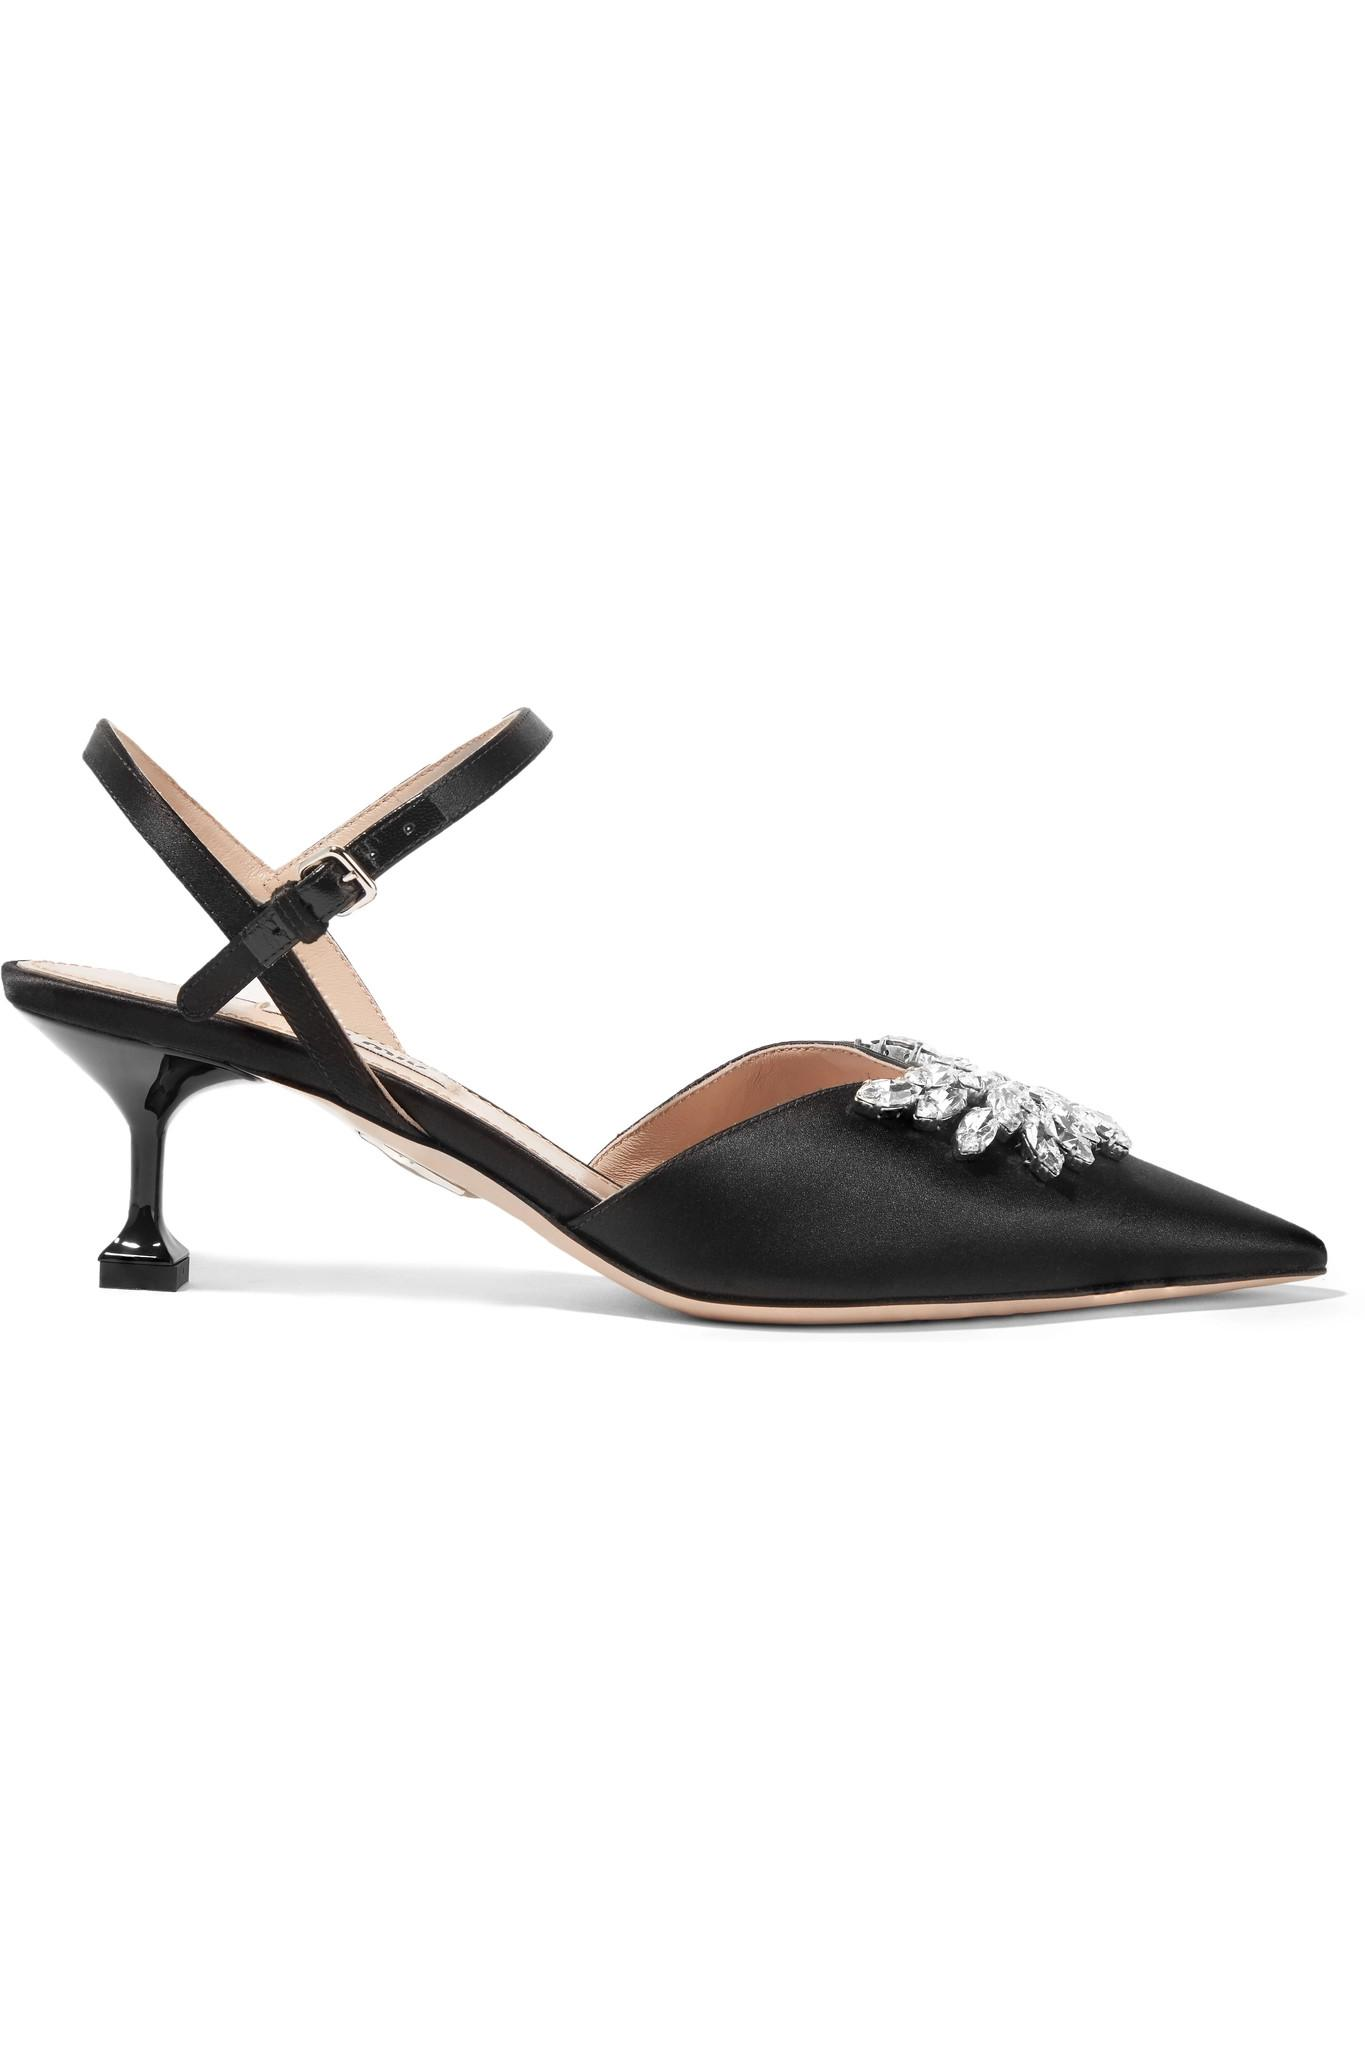 59bb7fe43a3e Lyst - Miu Miu Crystal-embellished Satin Slingback Pumps in Black